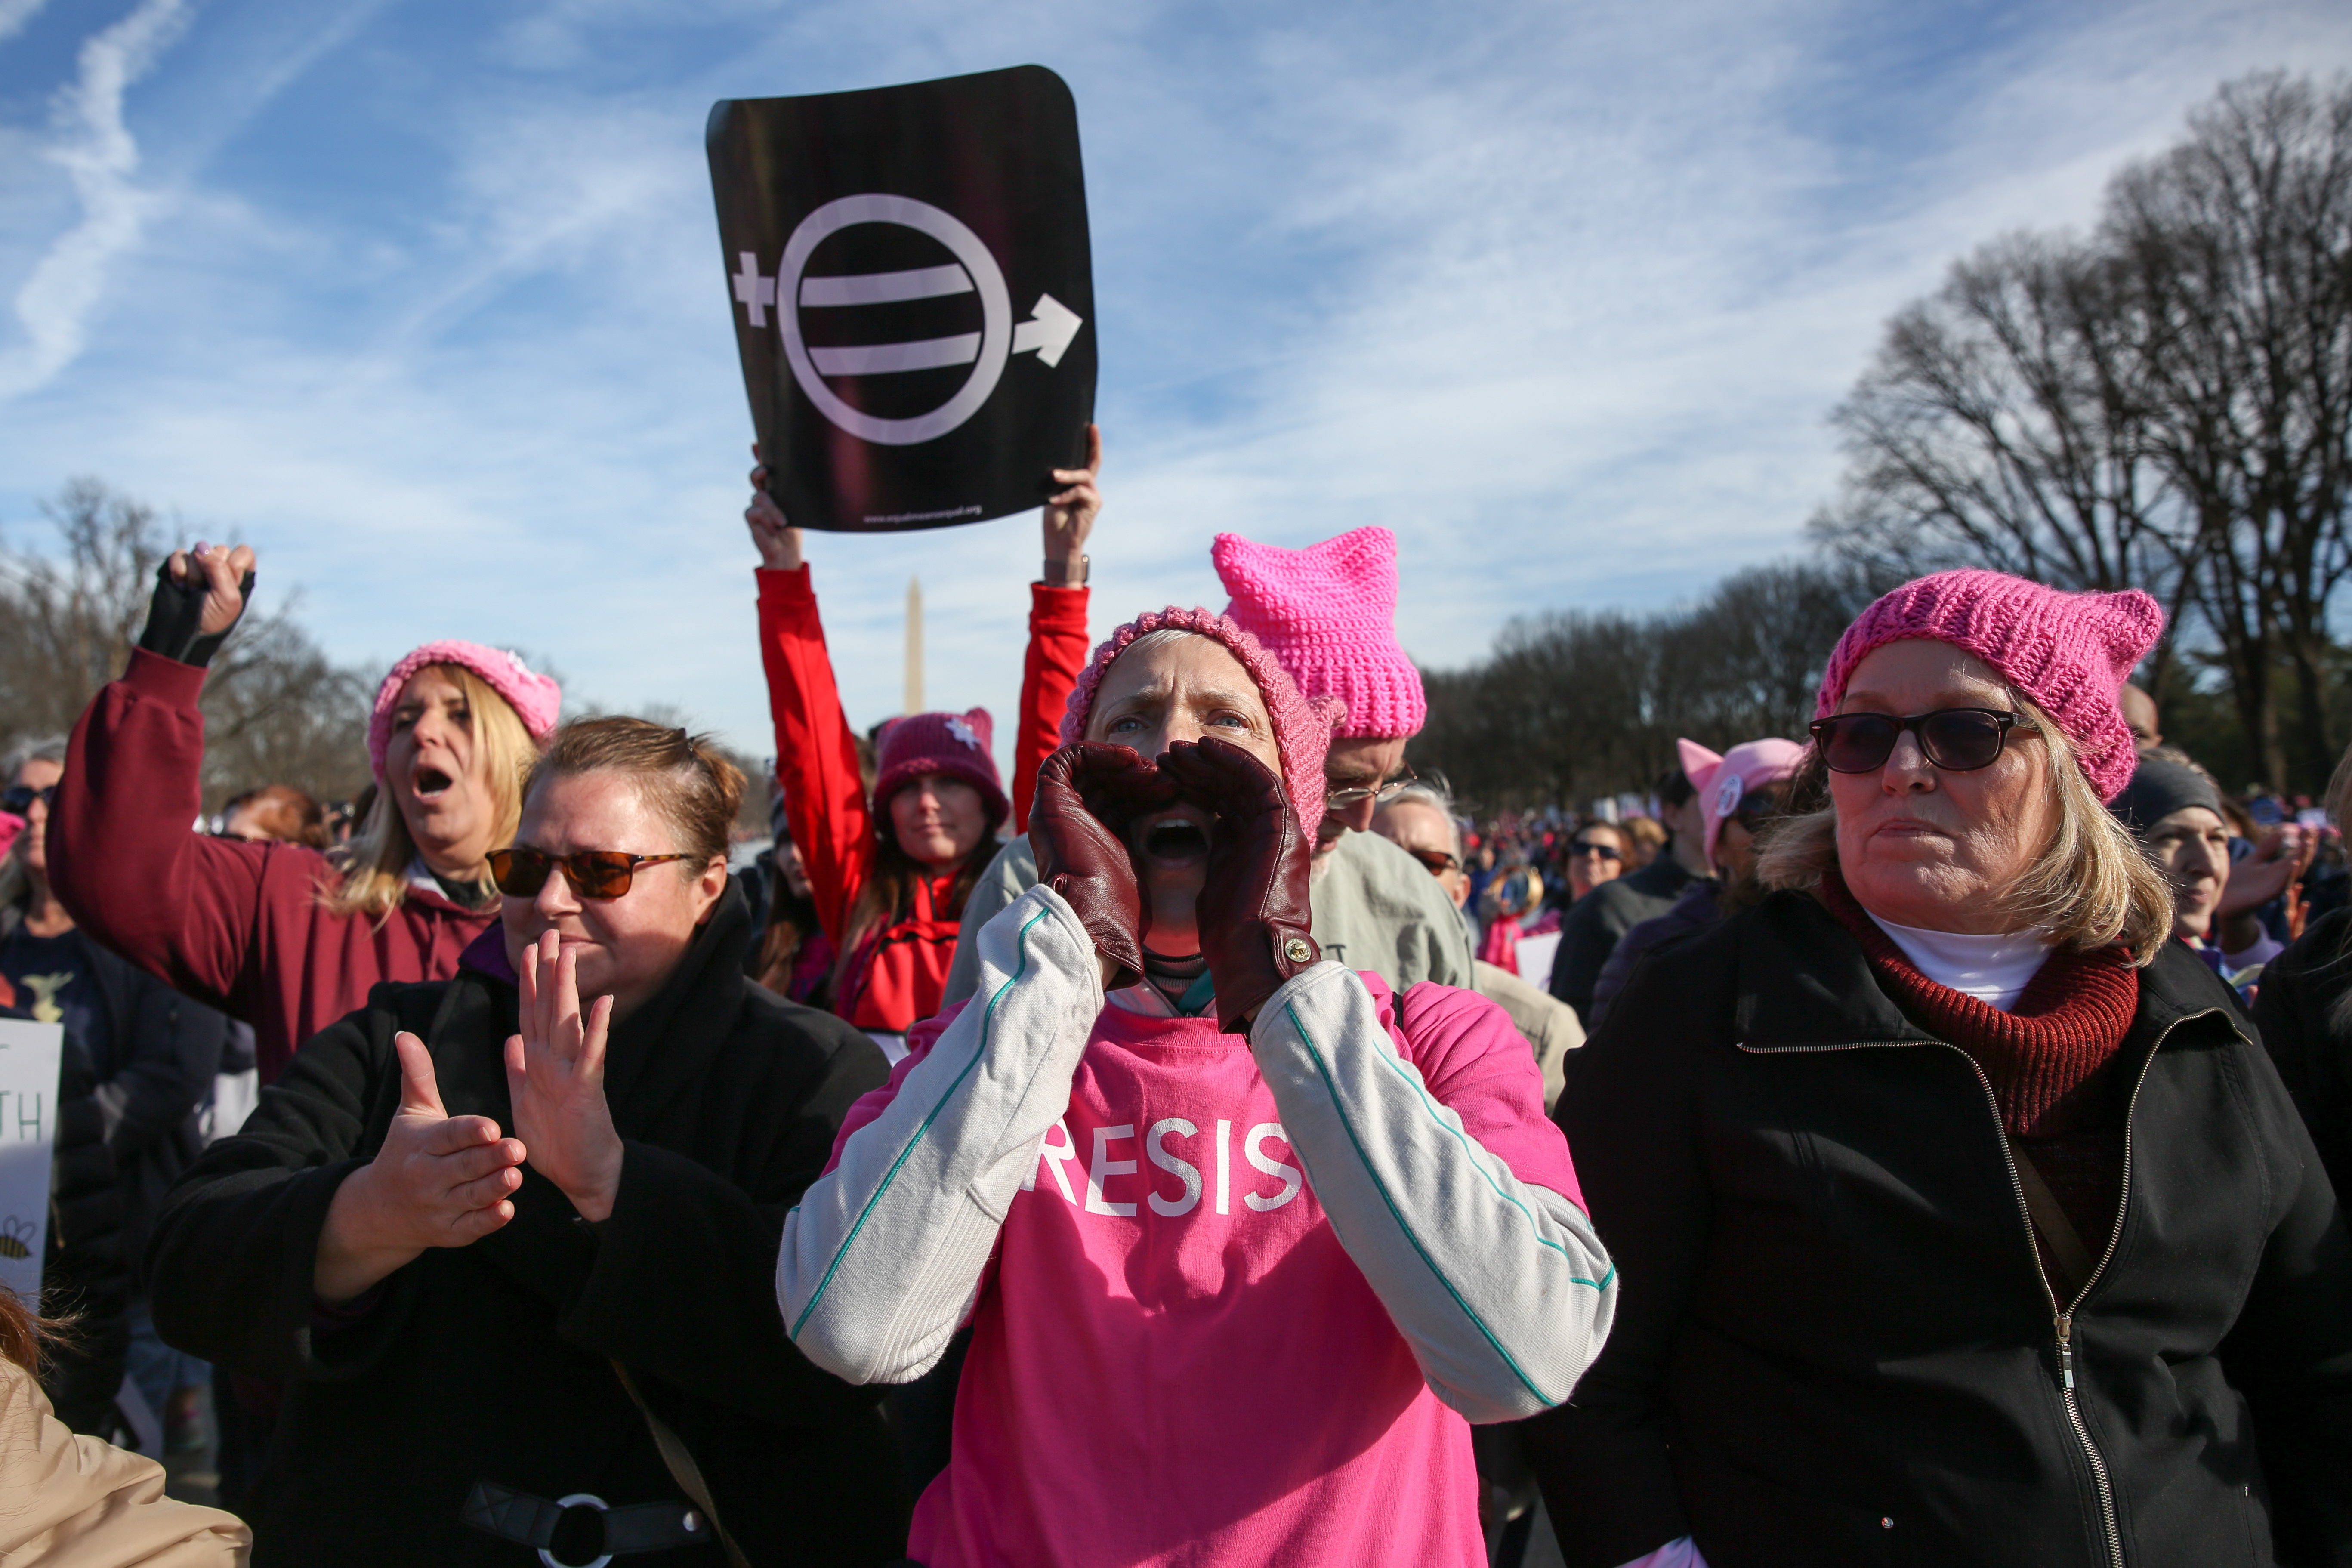 Thousands of women and their supporters took to the streets of D.C. today, marching between the Lincoln Memorial and the White House. The message of the second Women's March was focused on voting and encouraging women to vote ahead of the 2018 primary, where Democrats have the chance to take over the House and Senate. (Amanda Andrade-Rhoades/DC Refined)